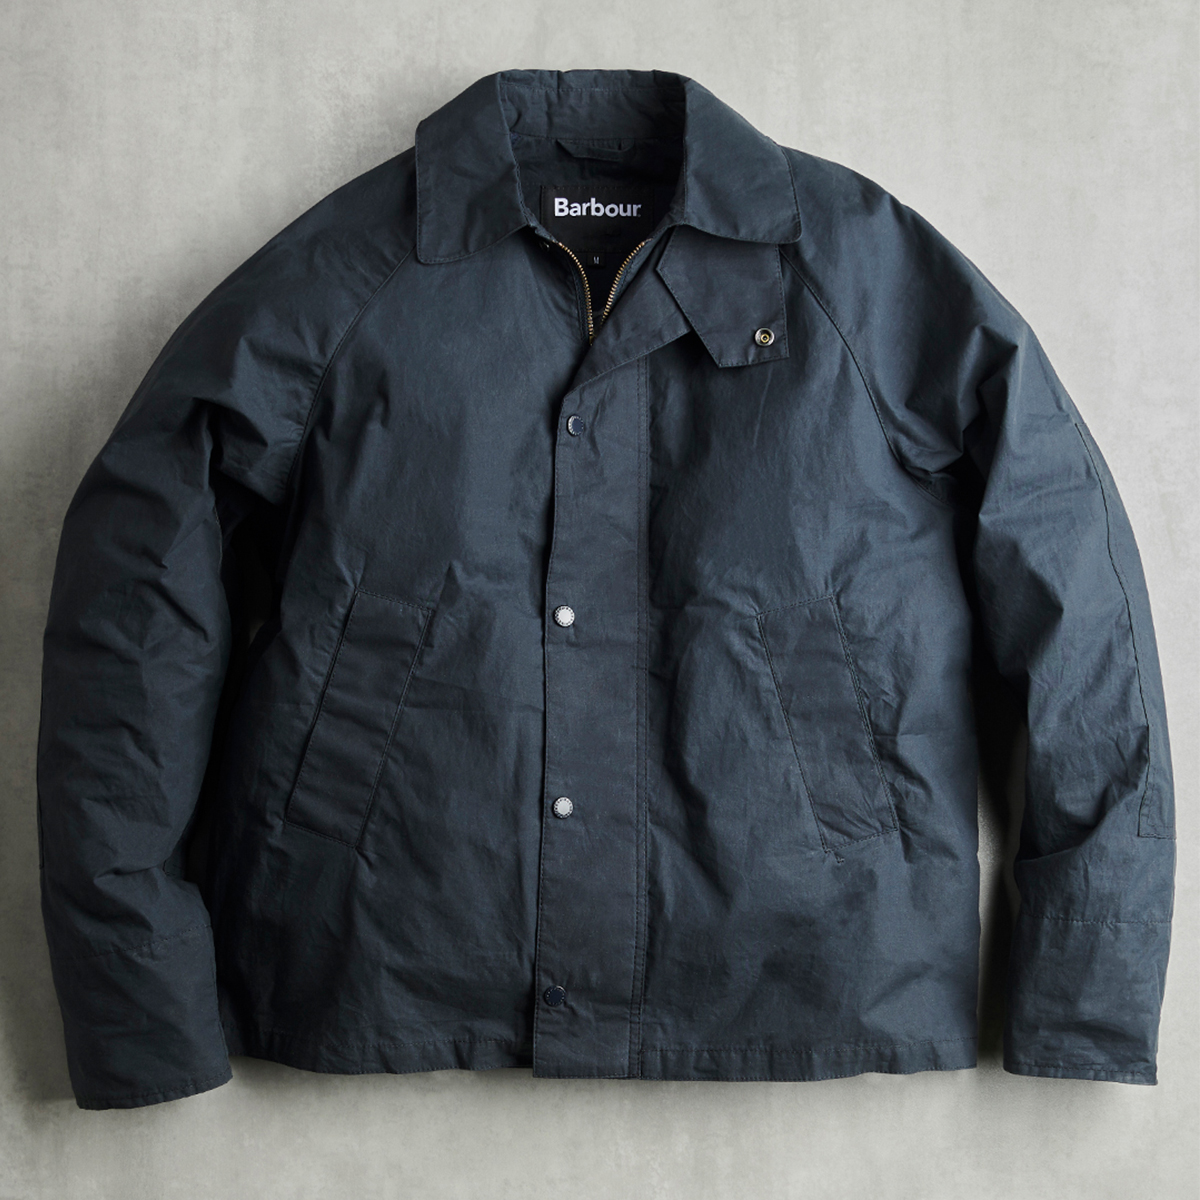 Background image for Barbour x Engineered Garments